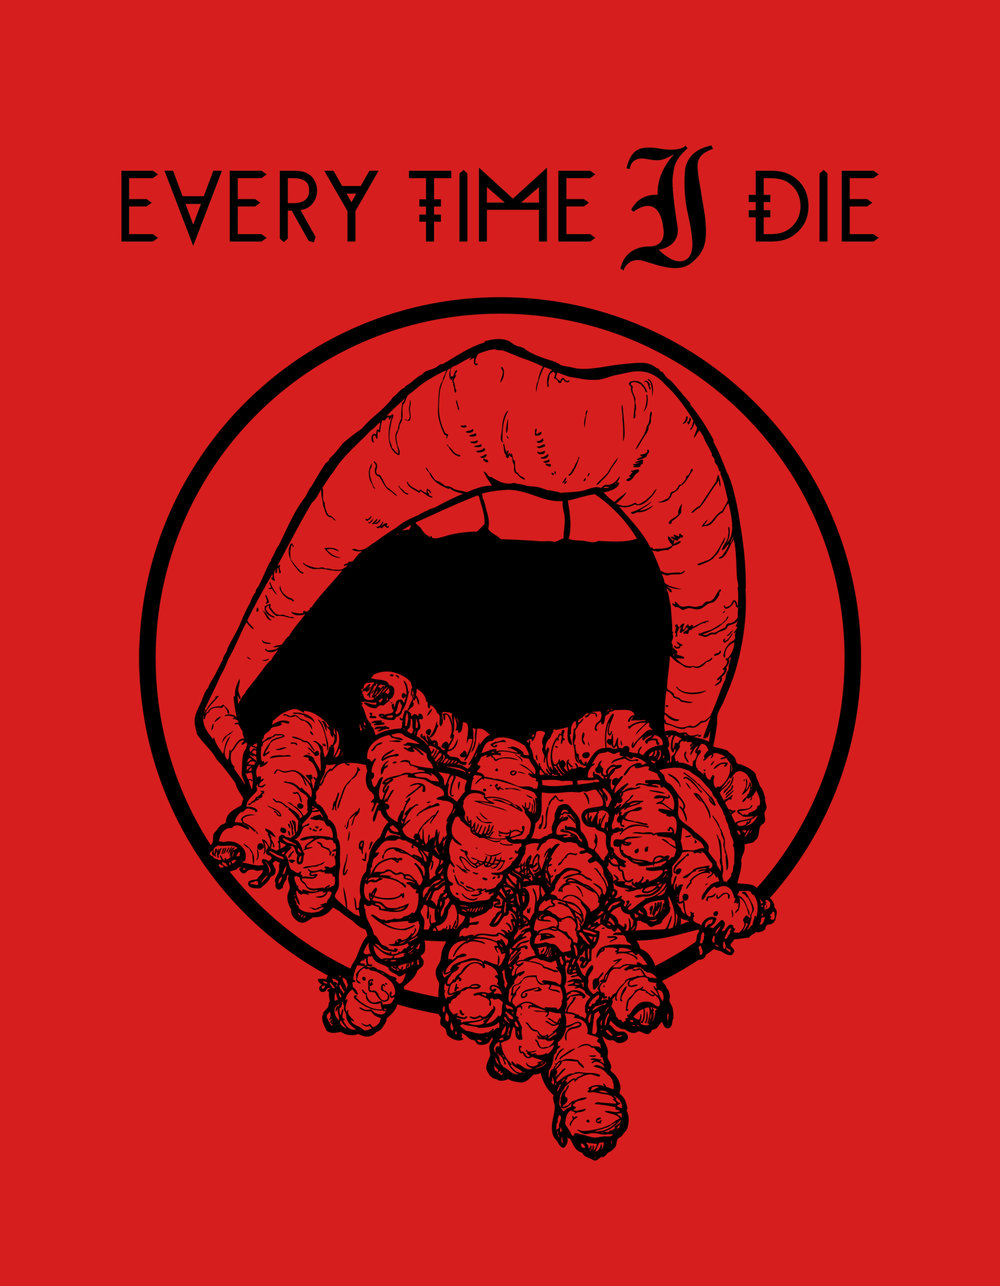 Shirt design for Every Time I Die.